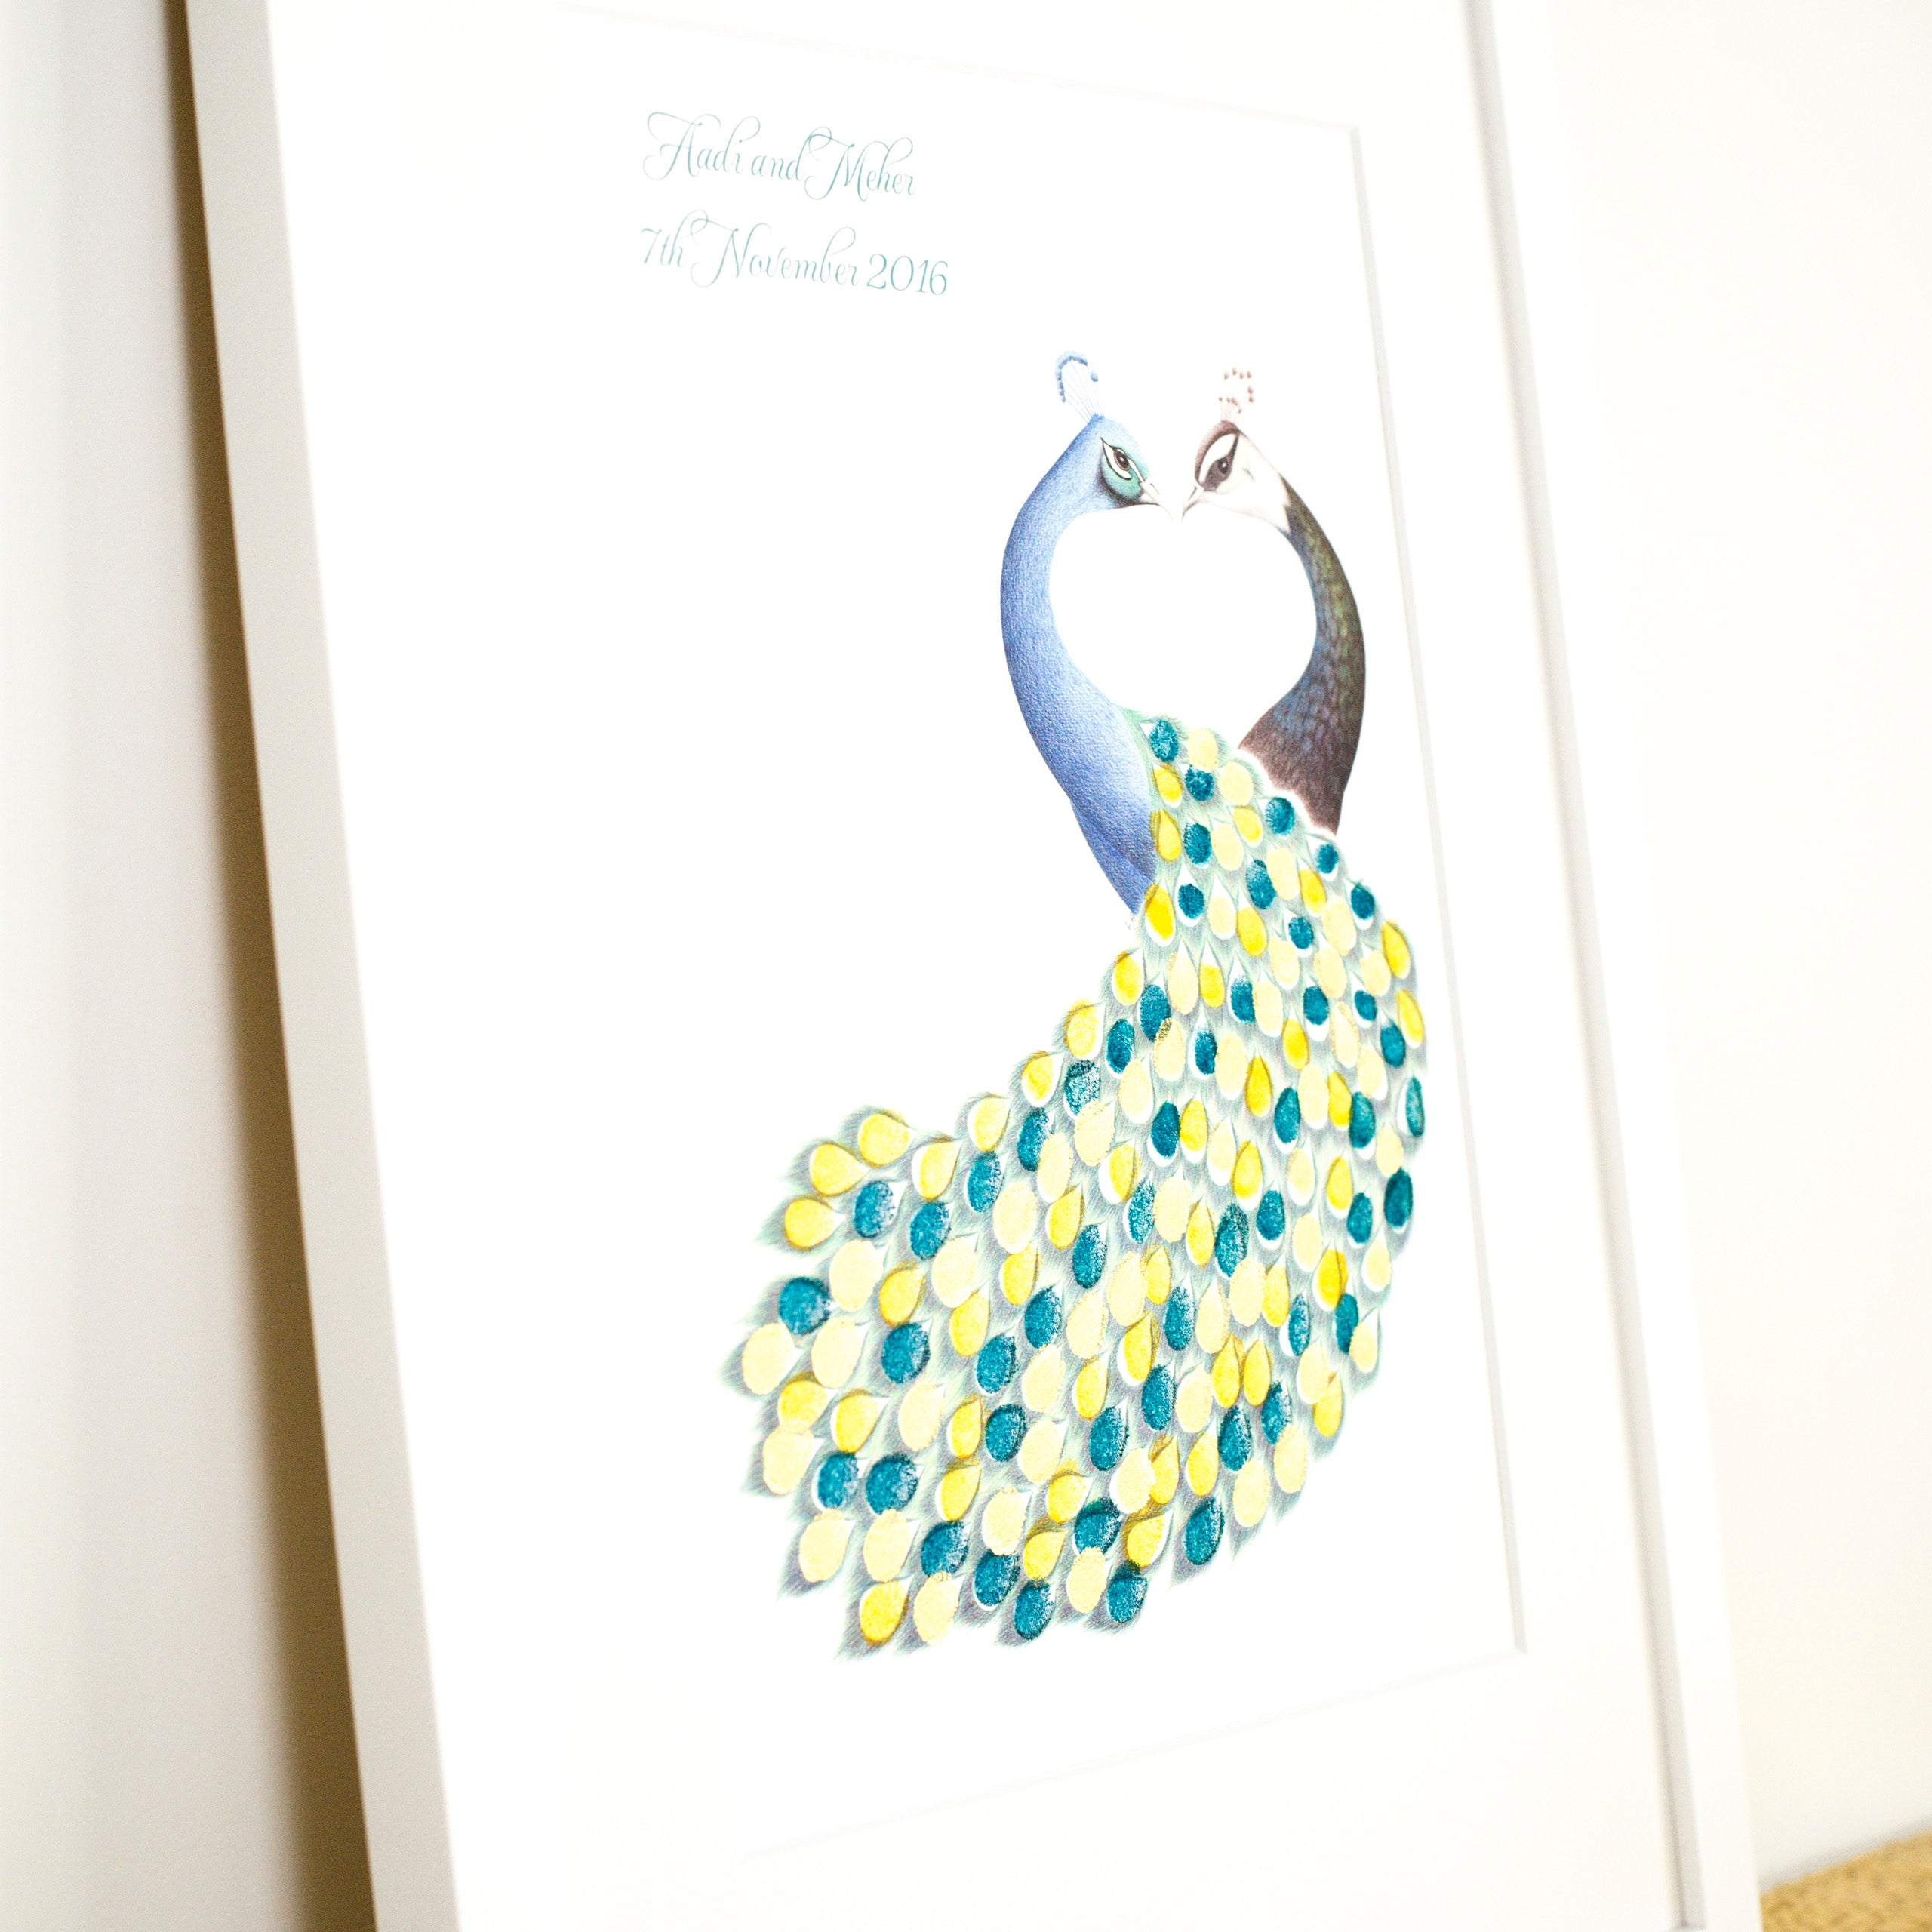 Peacock & Peahen guestbook